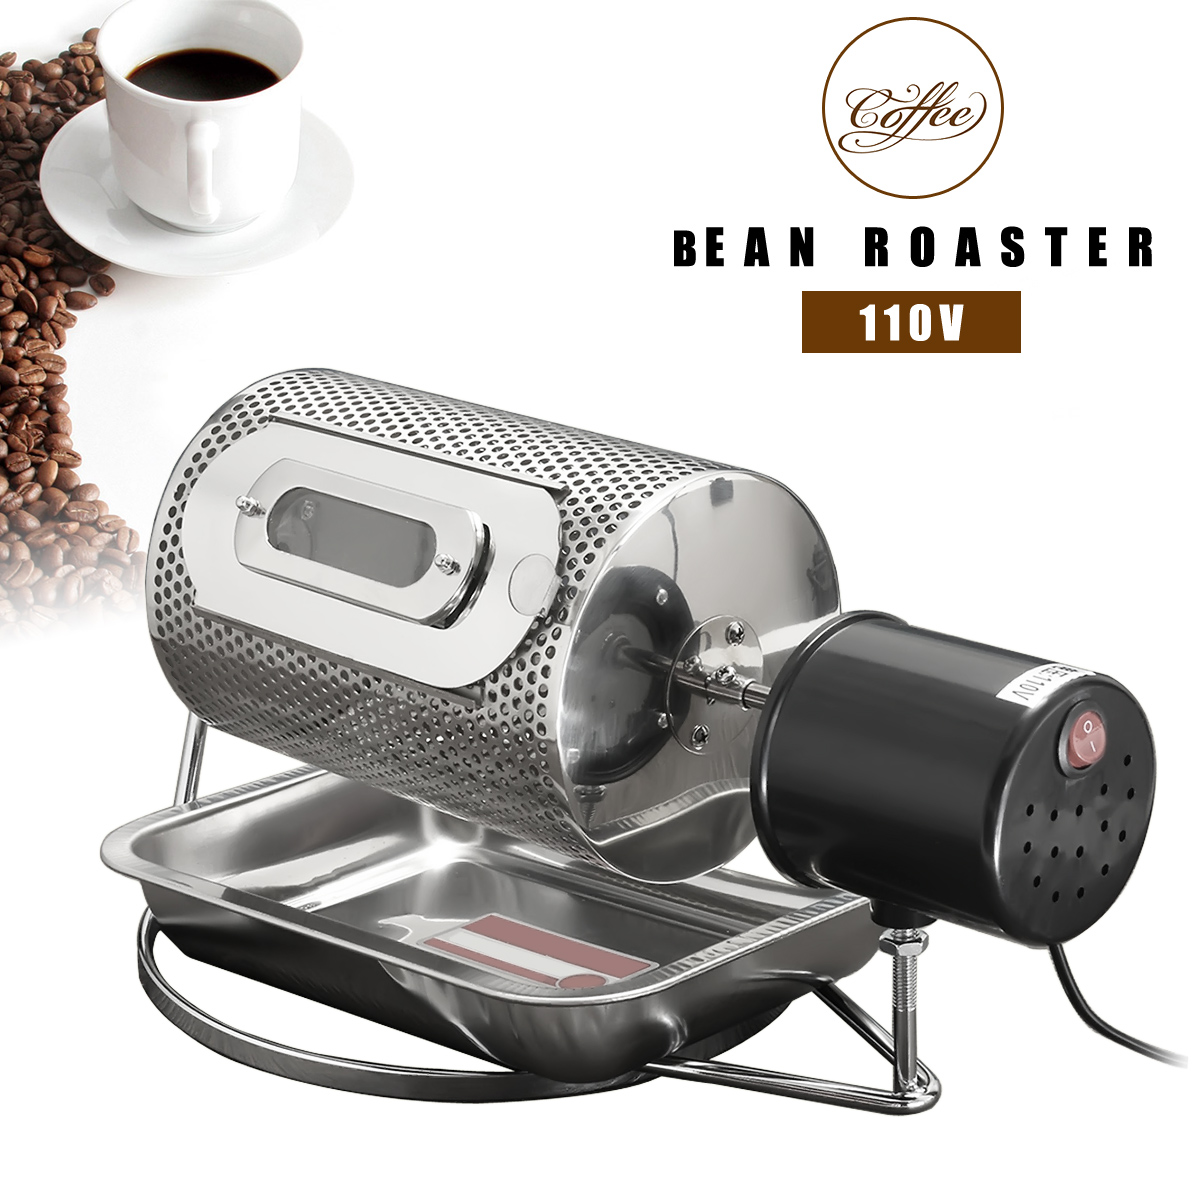 Stainless Steel Electric Coffee Bean Roaster Machine Roasting With Tray 110V